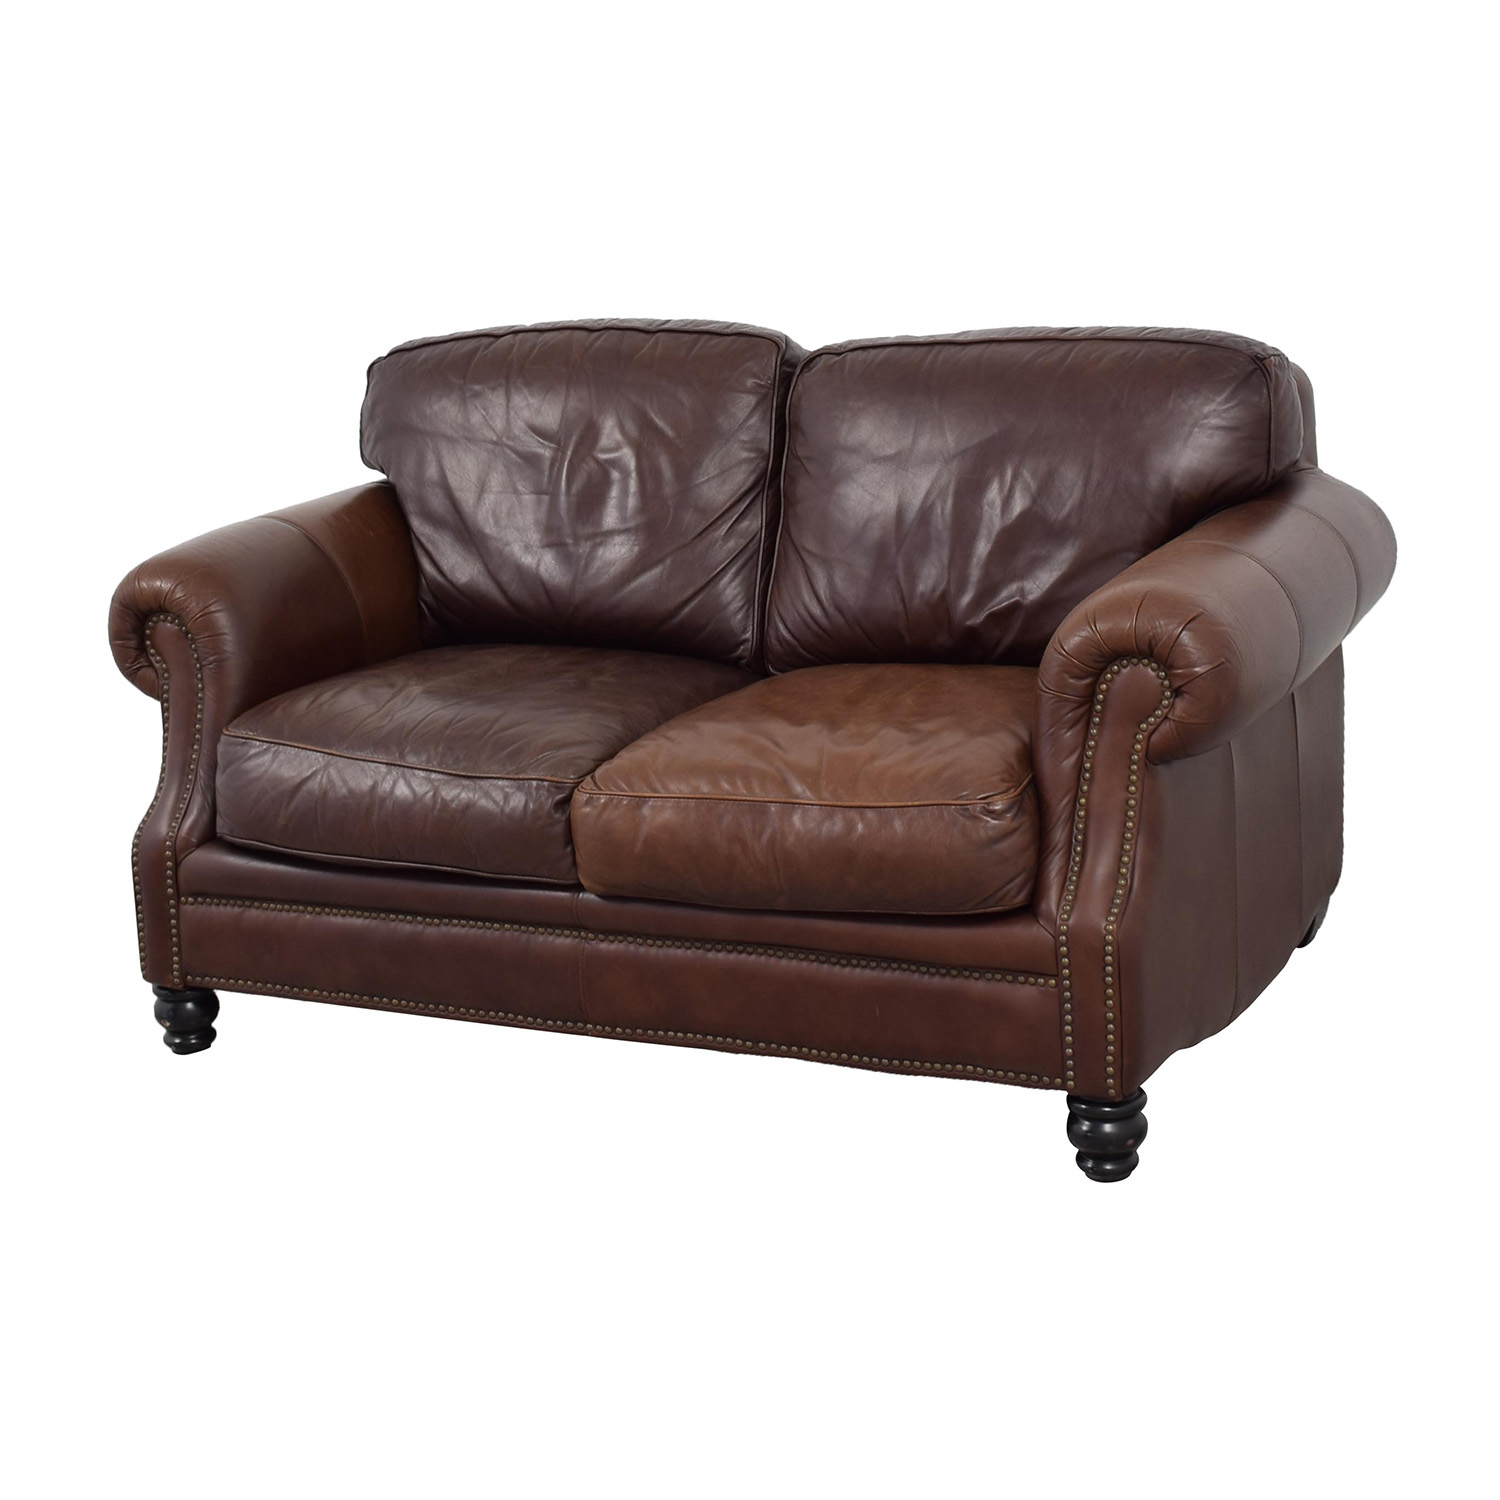 67 Off Bloomingdale 39 S Bloomingdale 39 S Brown Leather Loveseat Sofas